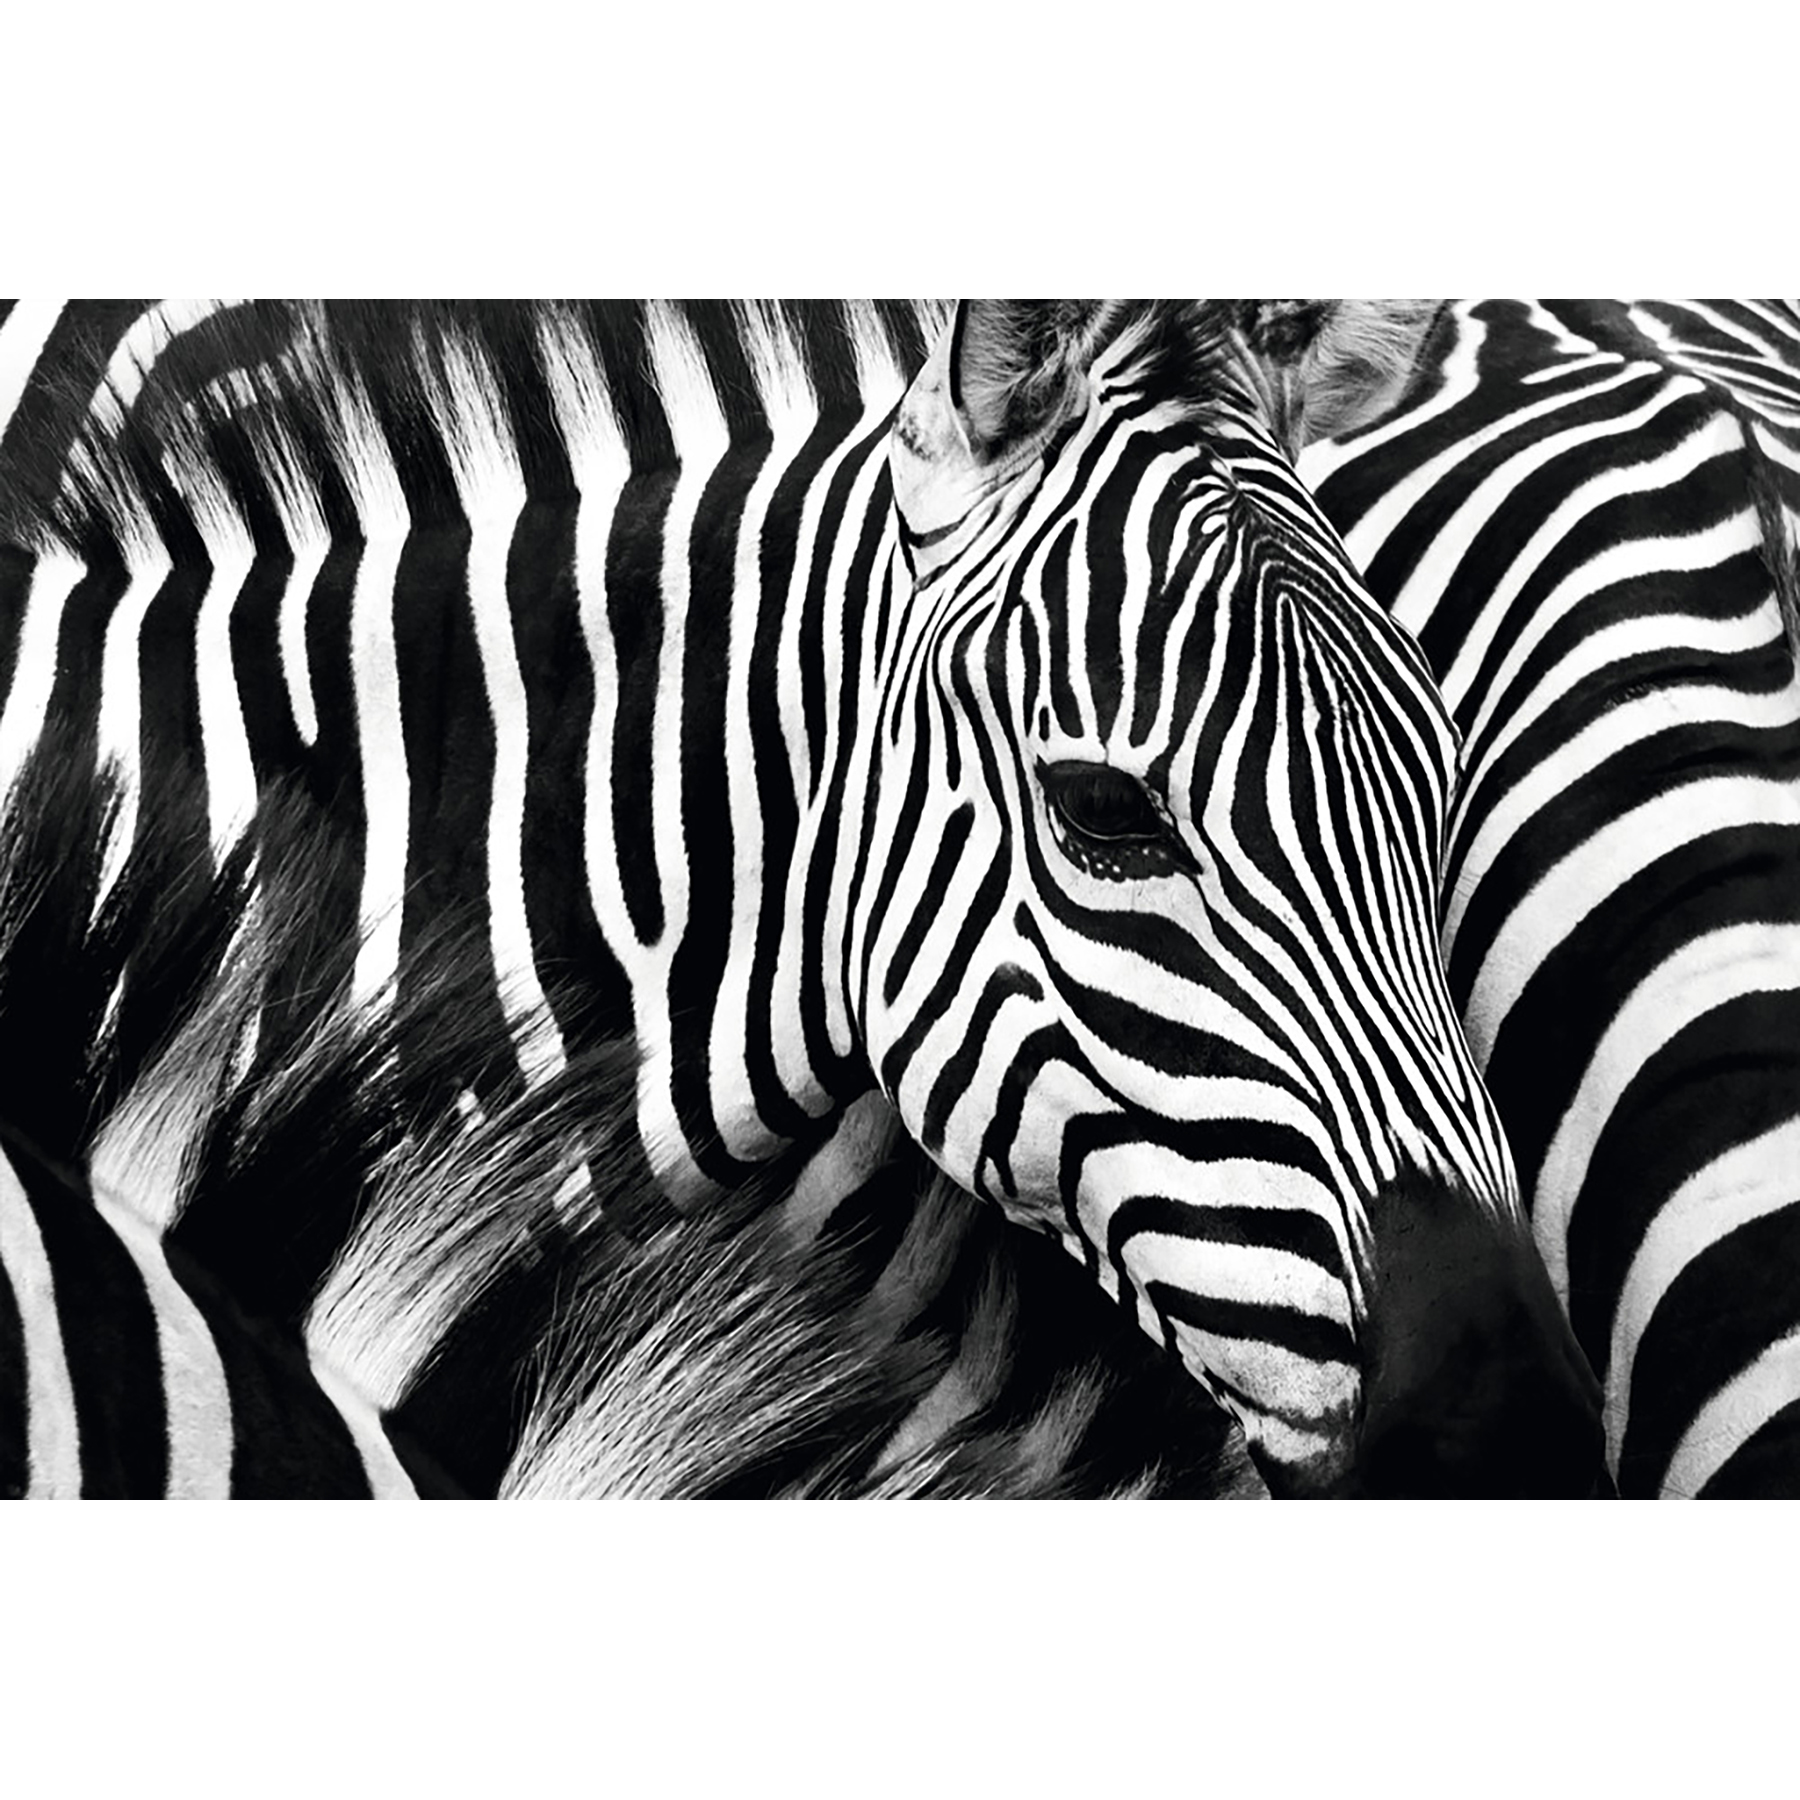 Paperflow Decorative Picture, Zebra